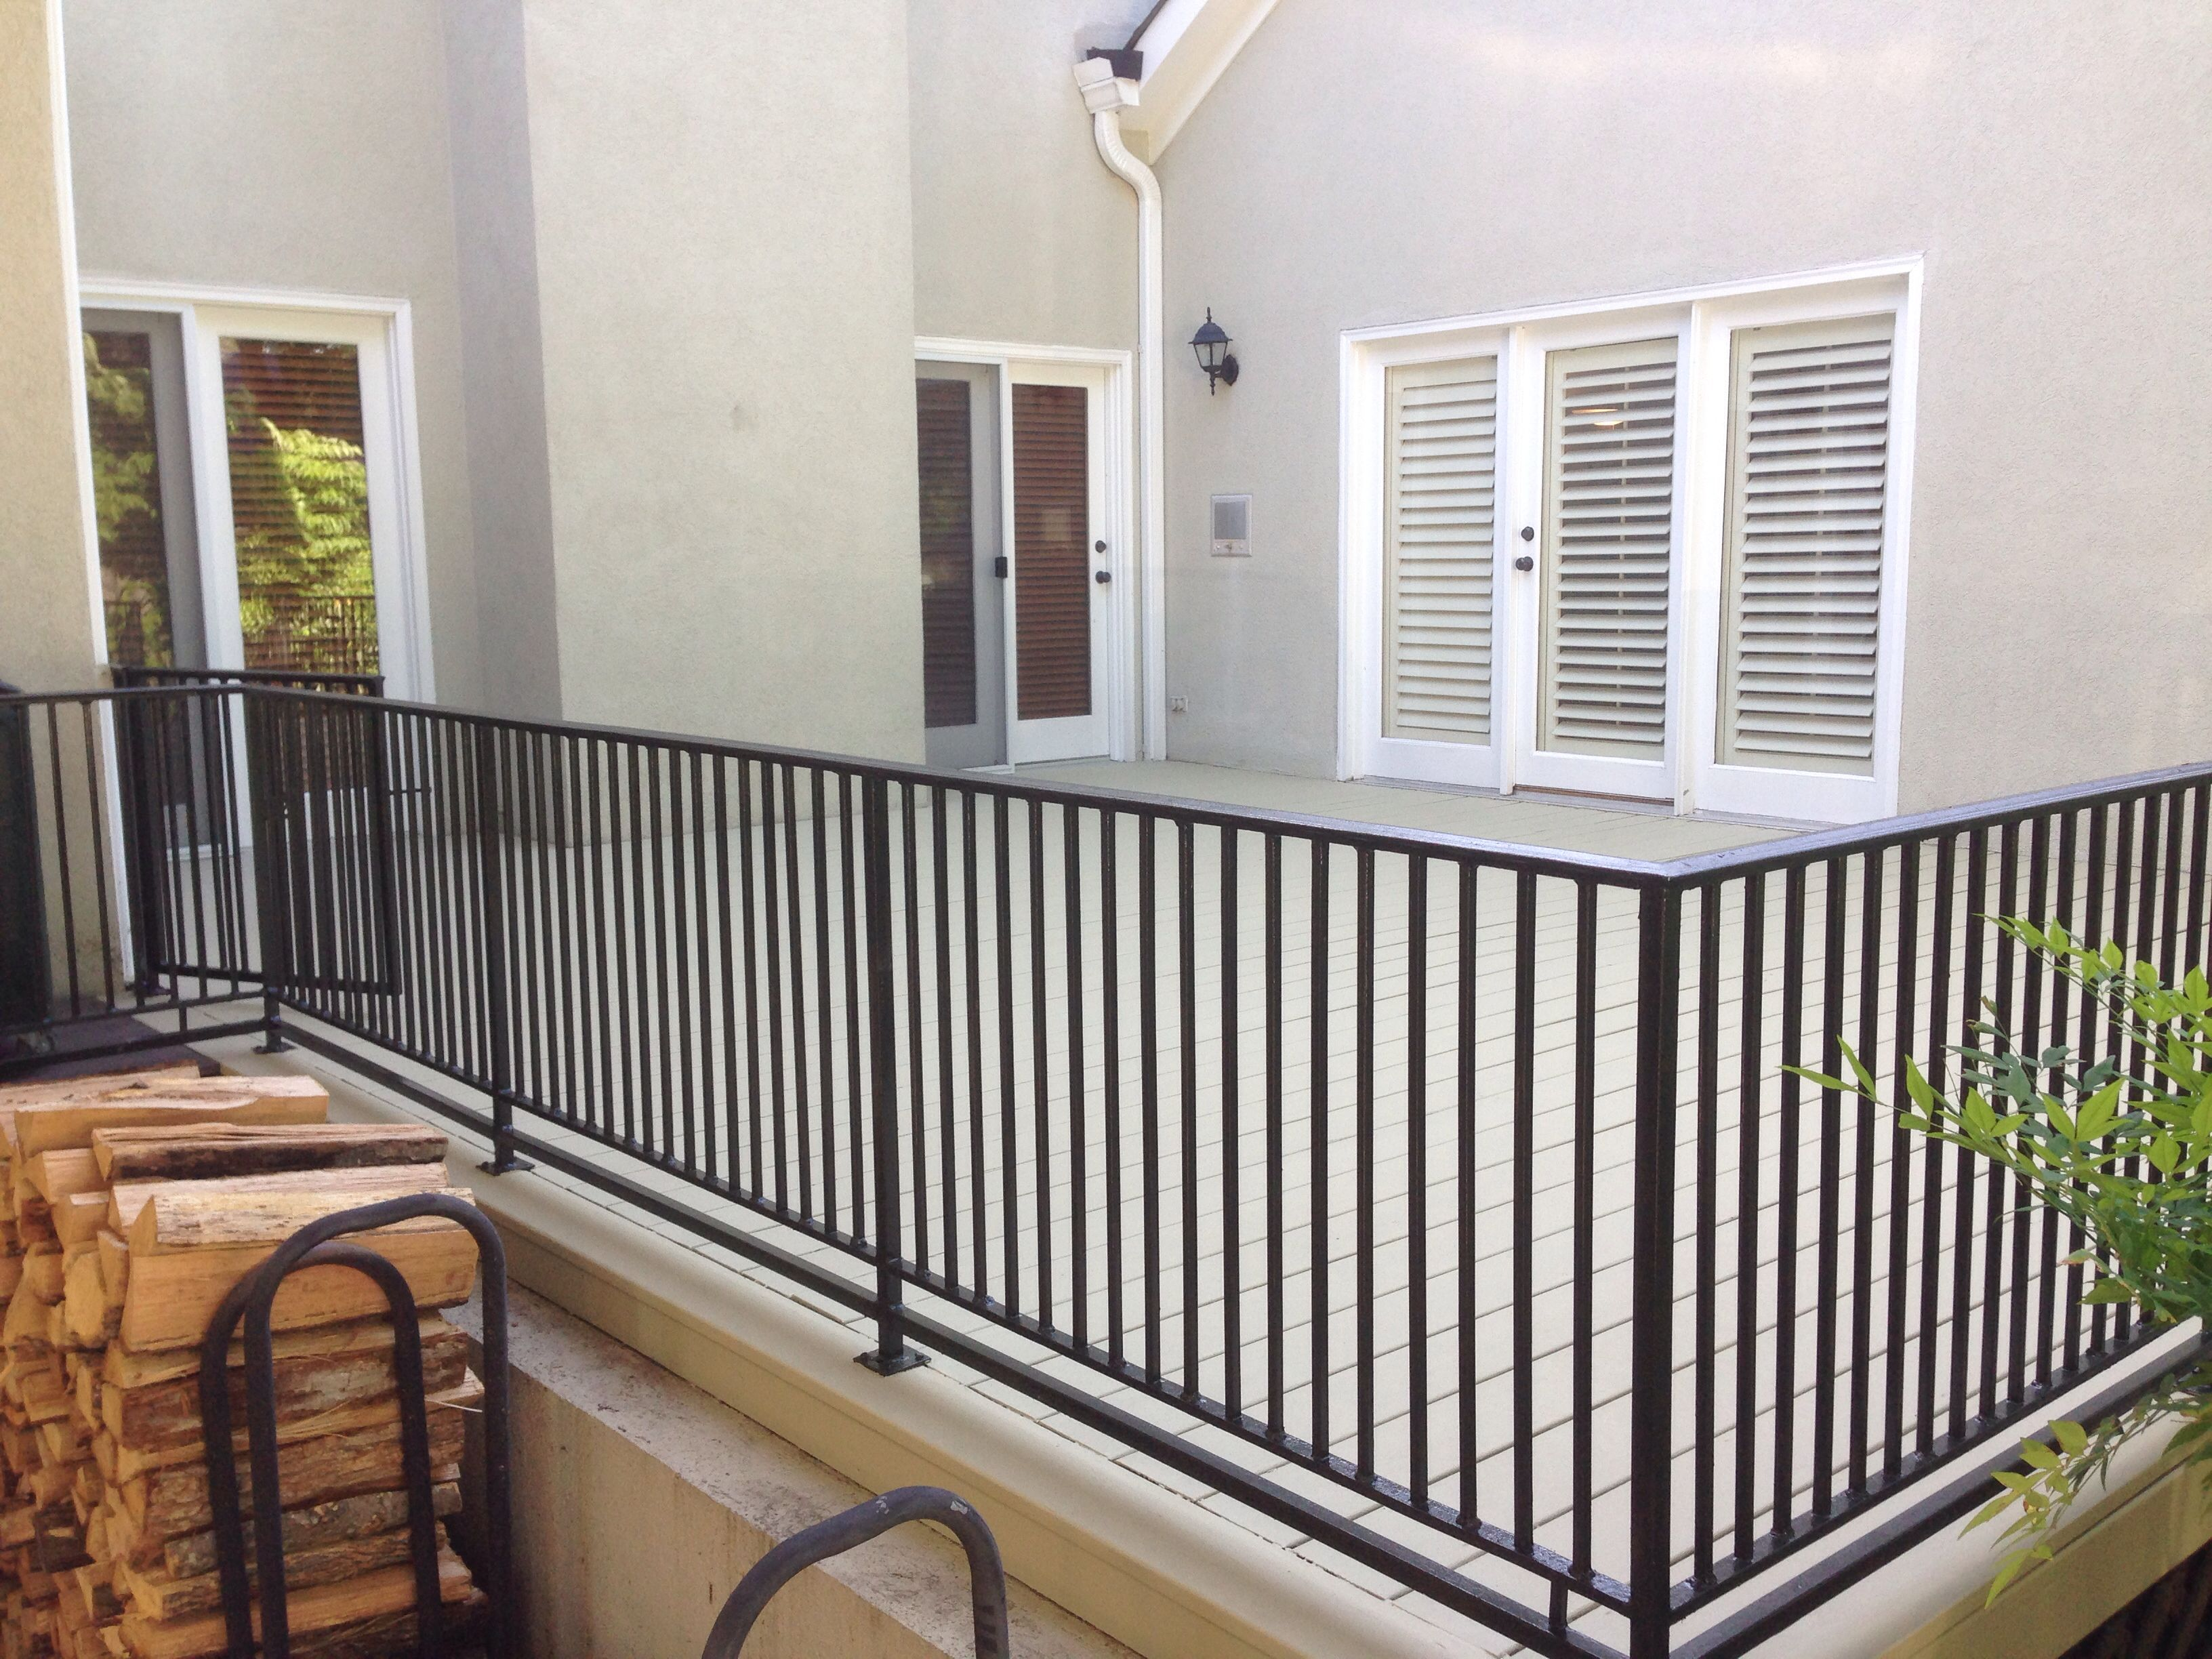 This Deck Was Coated With Bher Deck Over From Home Depot